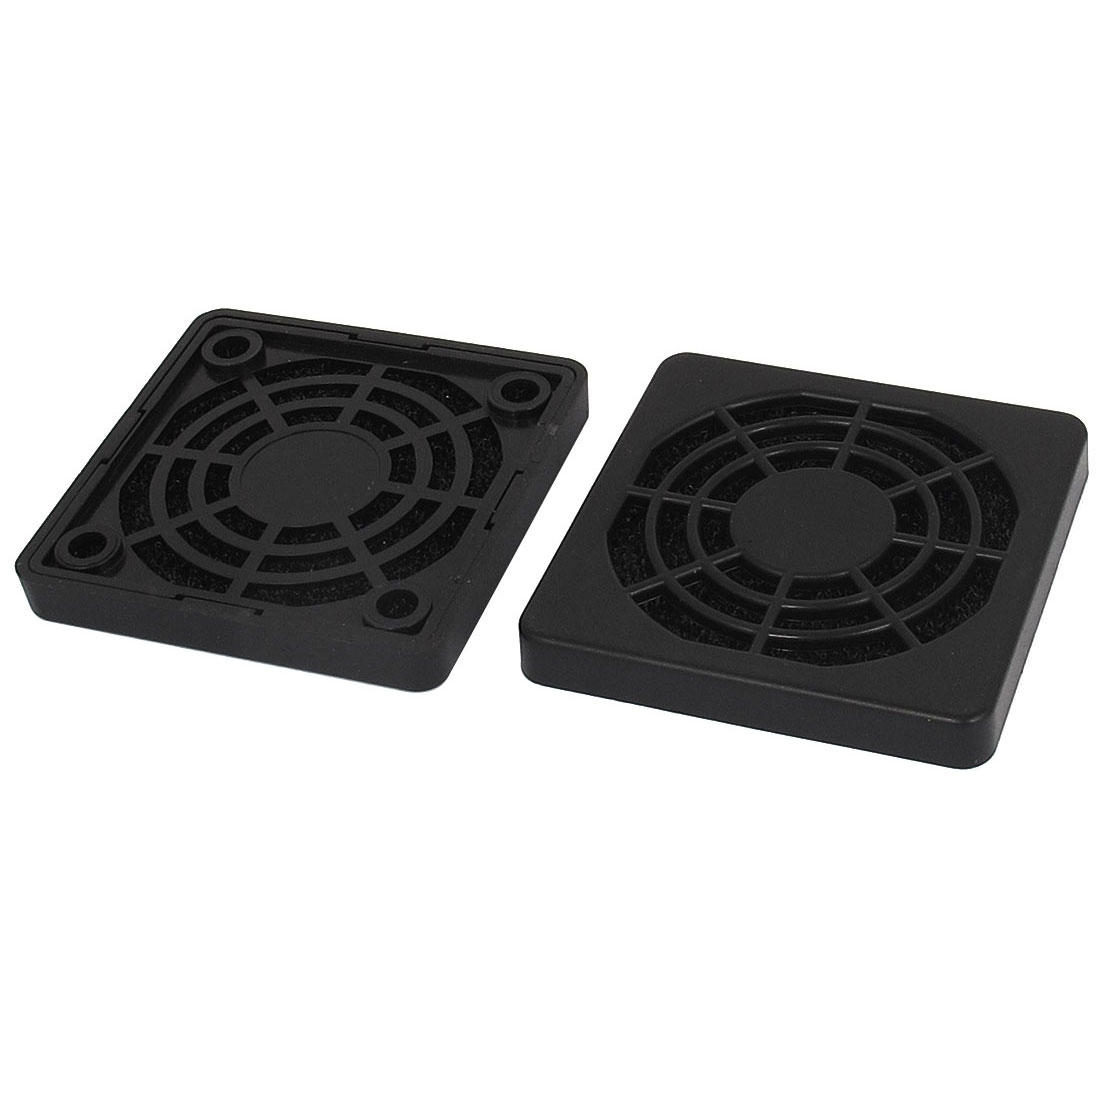 PC Computer Dustproof 50mm Case Fan Dust Filter Guard Grill Protector Cover 2pcs